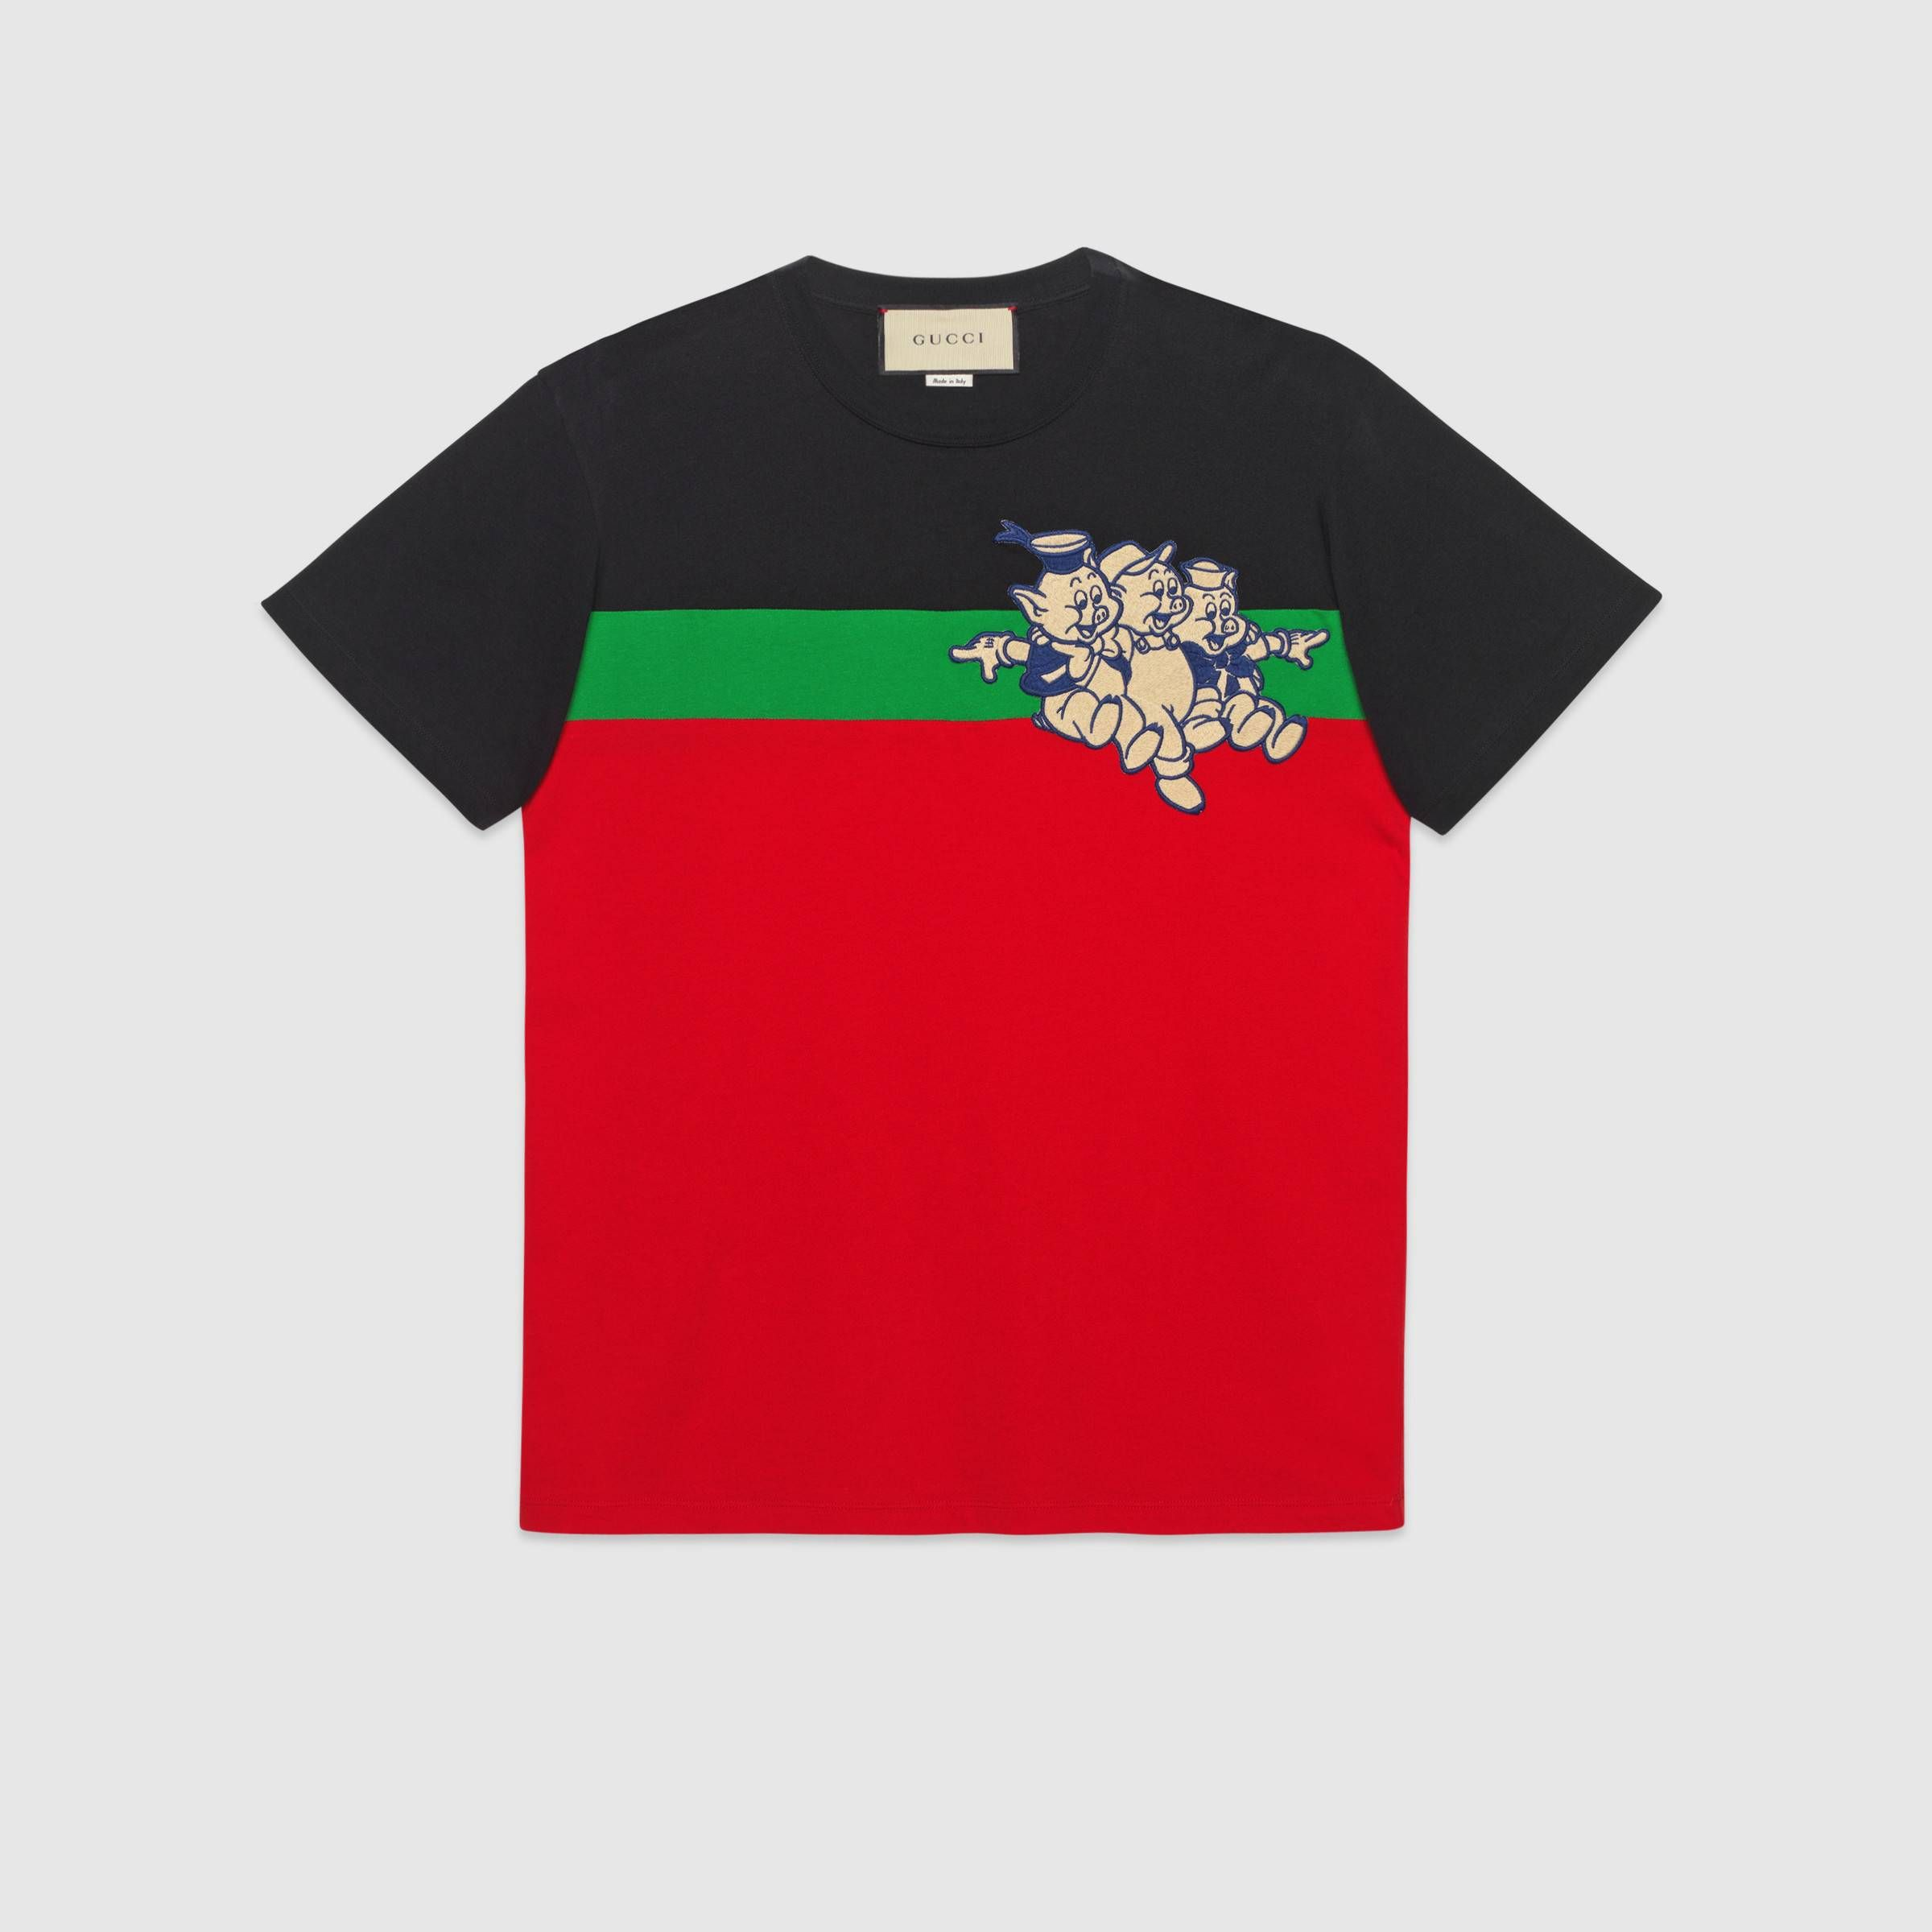 dfcecd5964 Men's oversize t-shirt with Three Little Pigs in Red and black ...